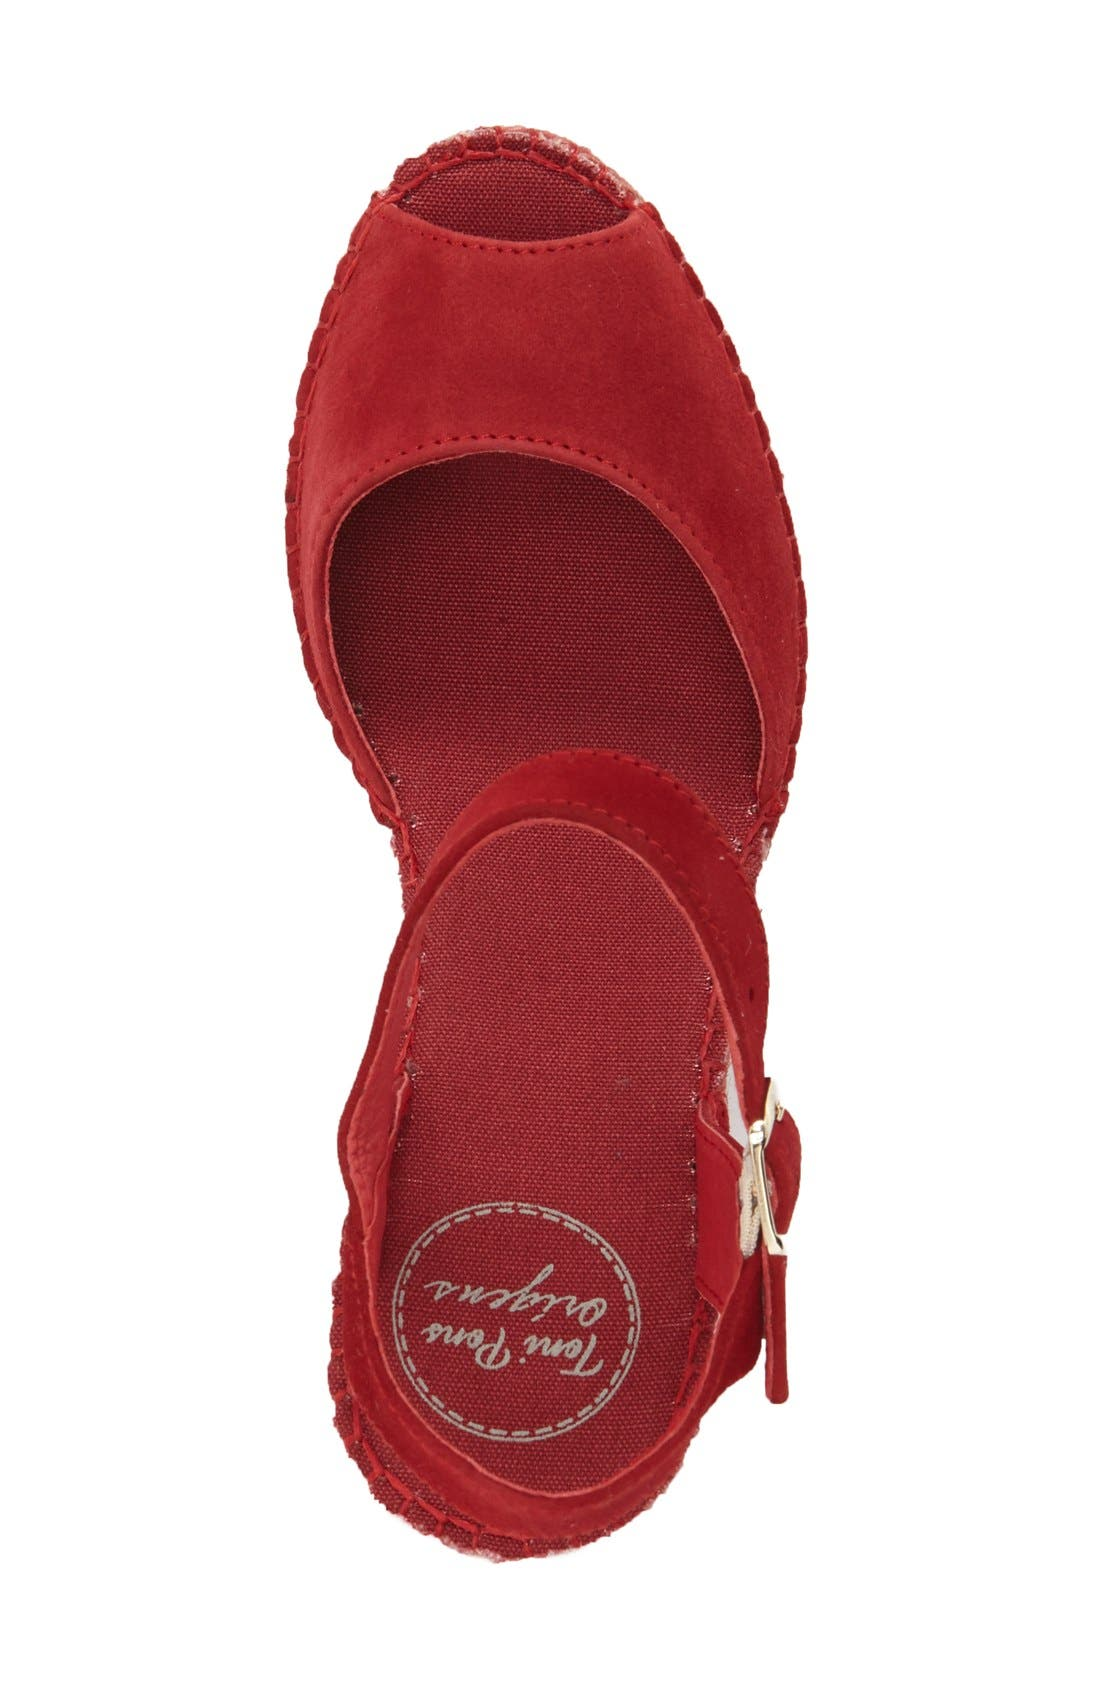 Laura Espadrille Wedge Sandal,                             Alternate thumbnail 3, color,                             RED SUEDE